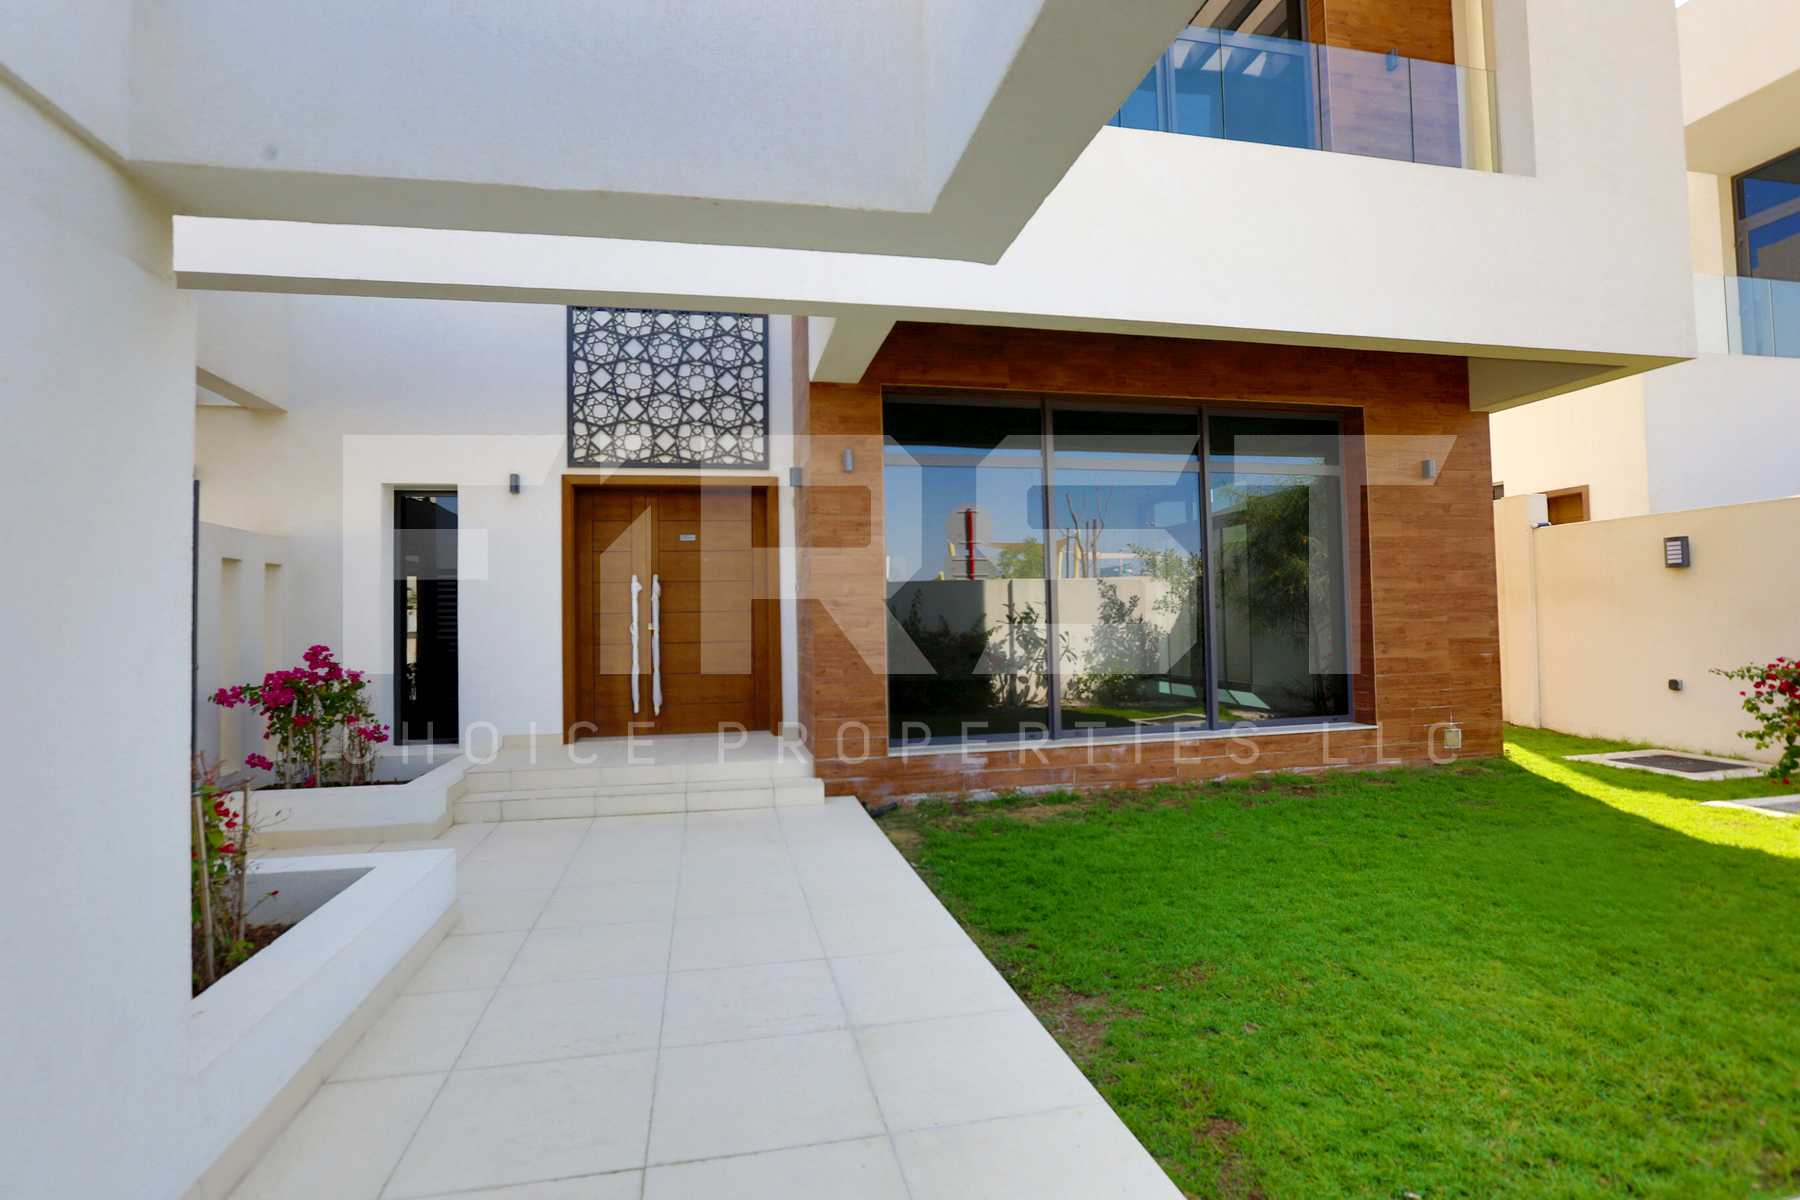 External Photo of 4 Bedroom Villa in West Yas Yas Island Abu Dhabi UAE (16).jpg